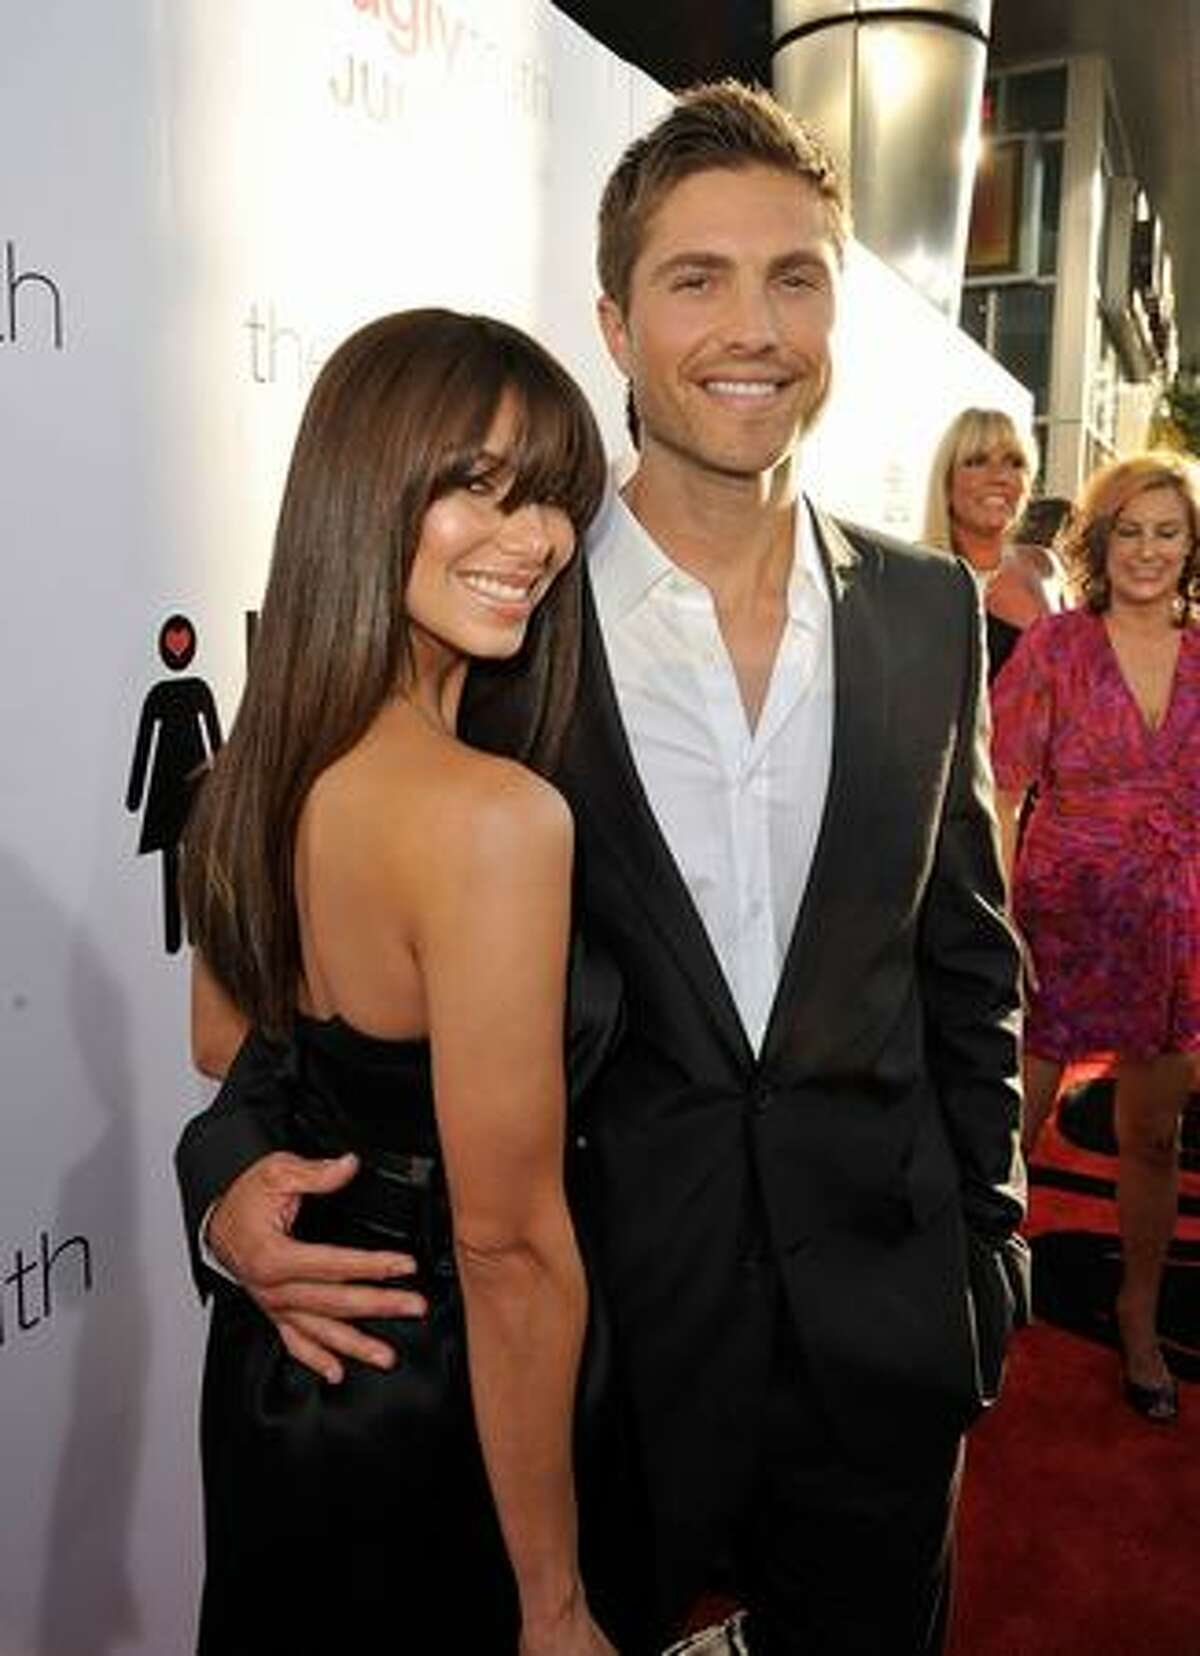 Actress Roselyn Sanchez (L) and actor Eric Winter arrive at the premiere of Columbia Pictures'